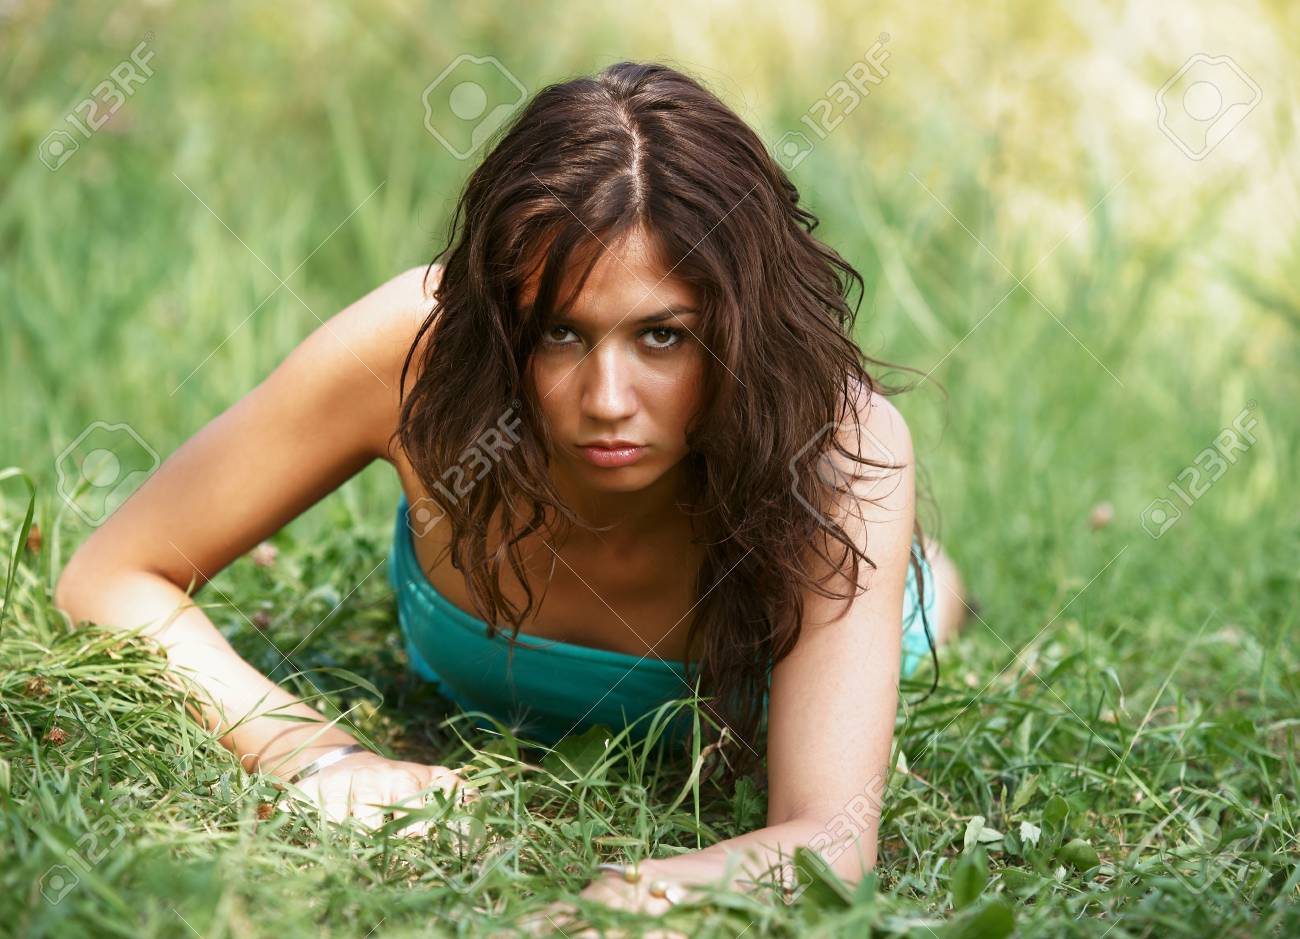 The beautiful girl on a green grass Stock Photo - 13335753